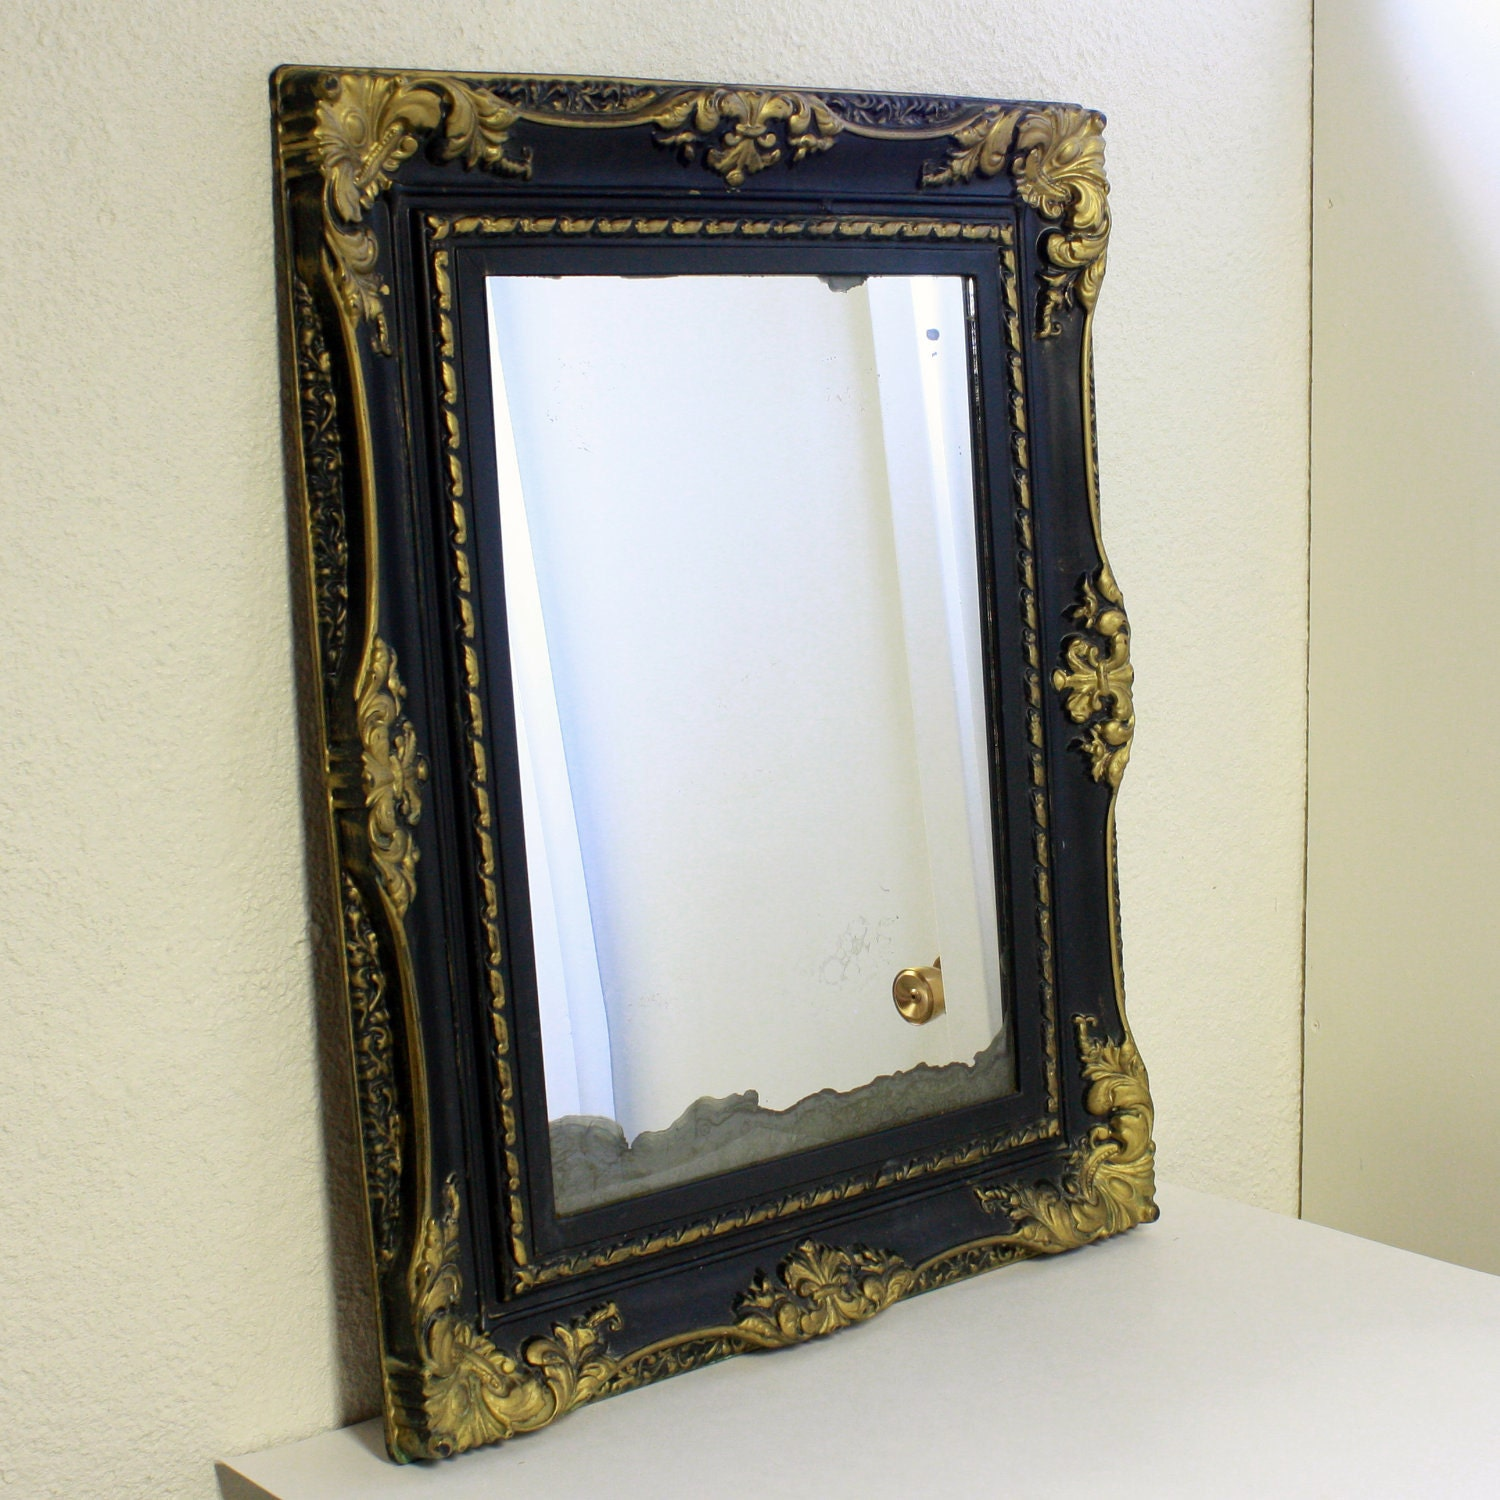 Vintage wall mirror wall hanging mirror gold by OldCottonwood